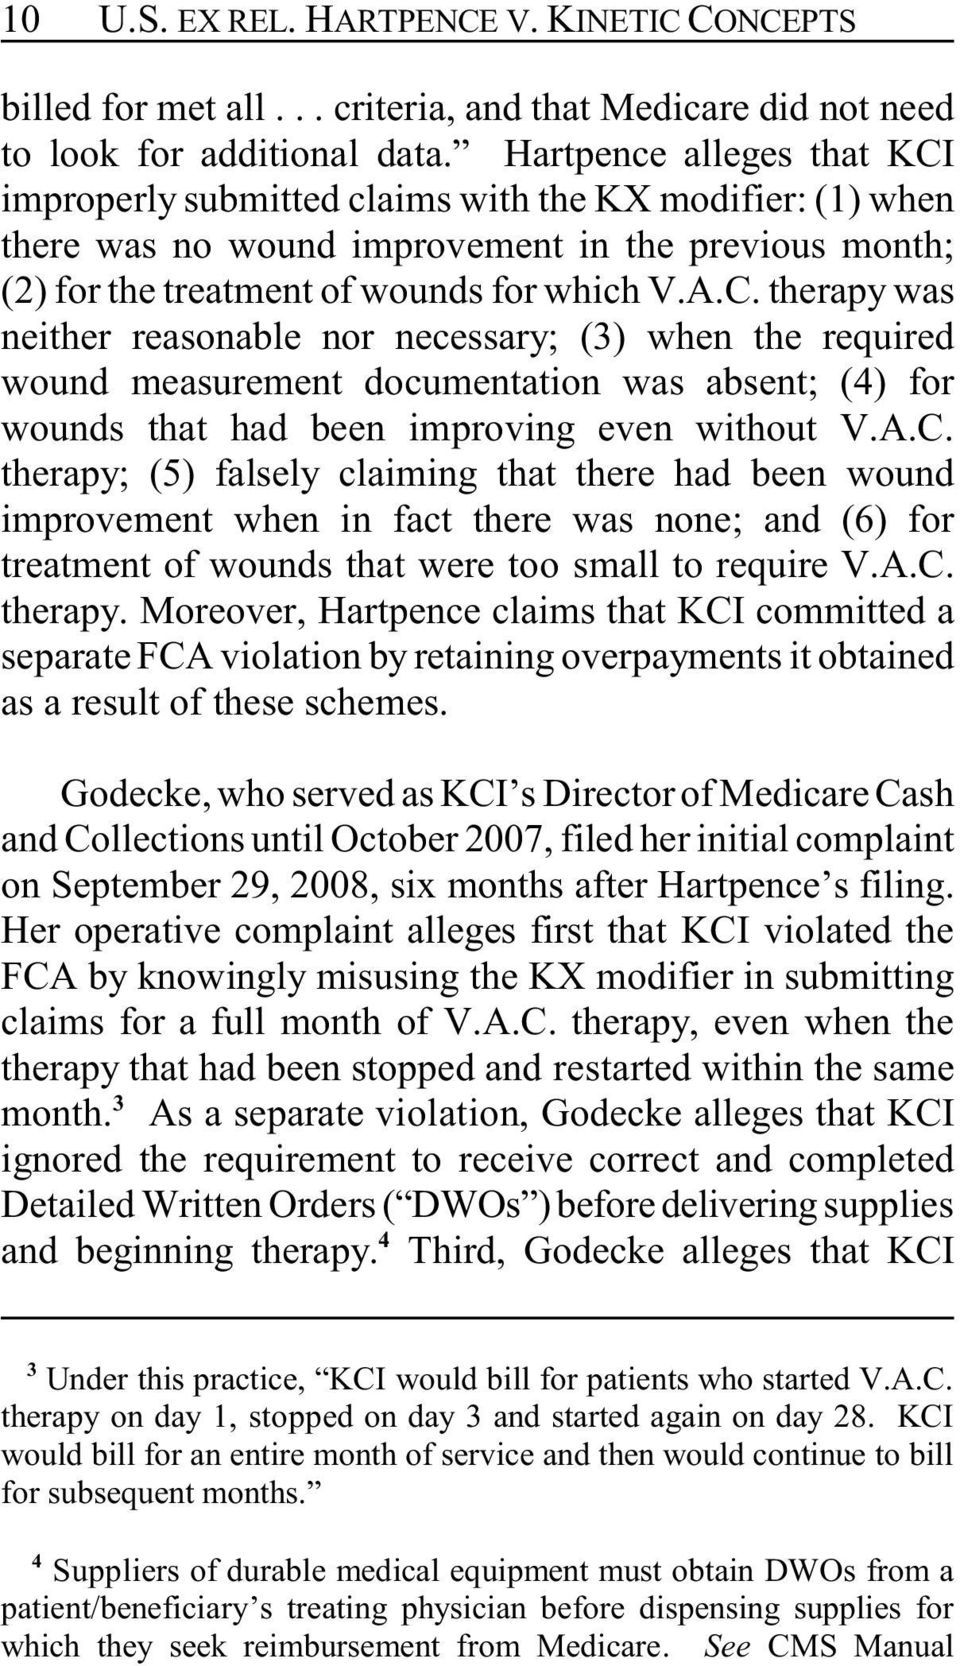 A.C. therapy; (5) falsely claiming that there had been wound improvement when in fact there was none; and (6) for treatment of wounds that were too small to require V.A.C. therapy. Moreover, Hartpence claims that KCI committed a separate FCA violation by retaining overpayments it obtained as a result of these schemes.